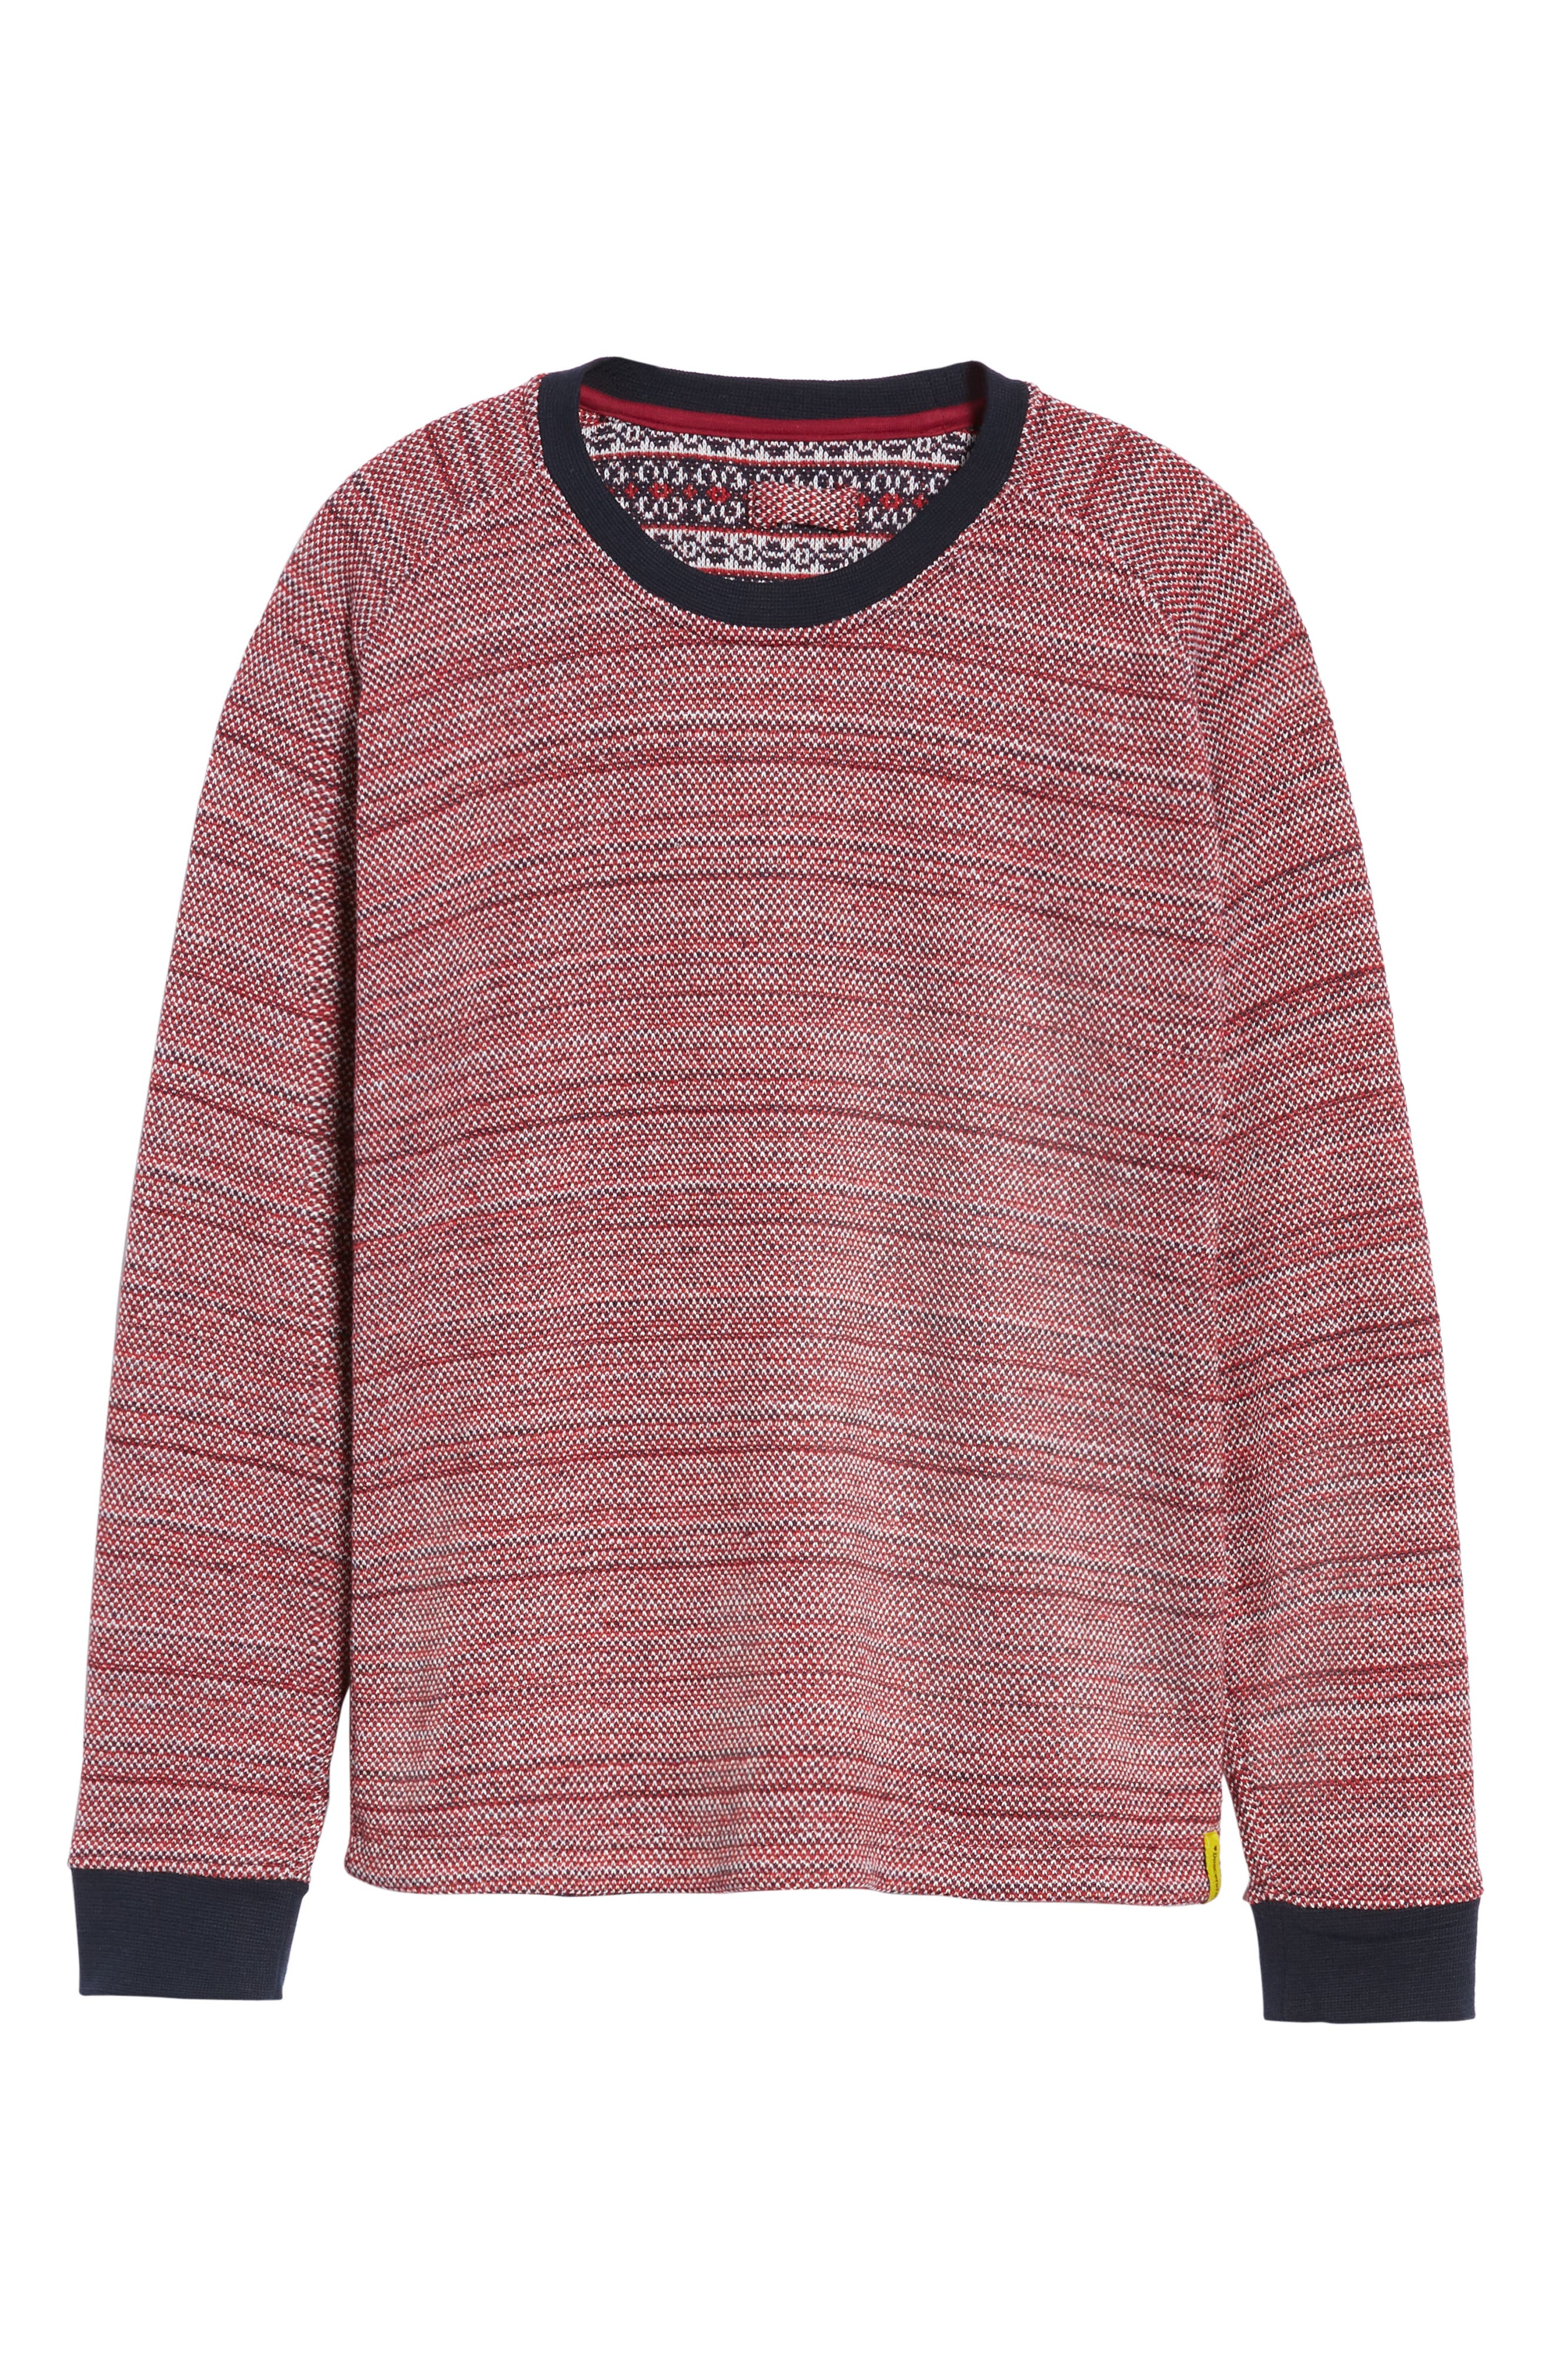 Inside Out Sweater,                             Alternate thumbnail 6, color,                             RED